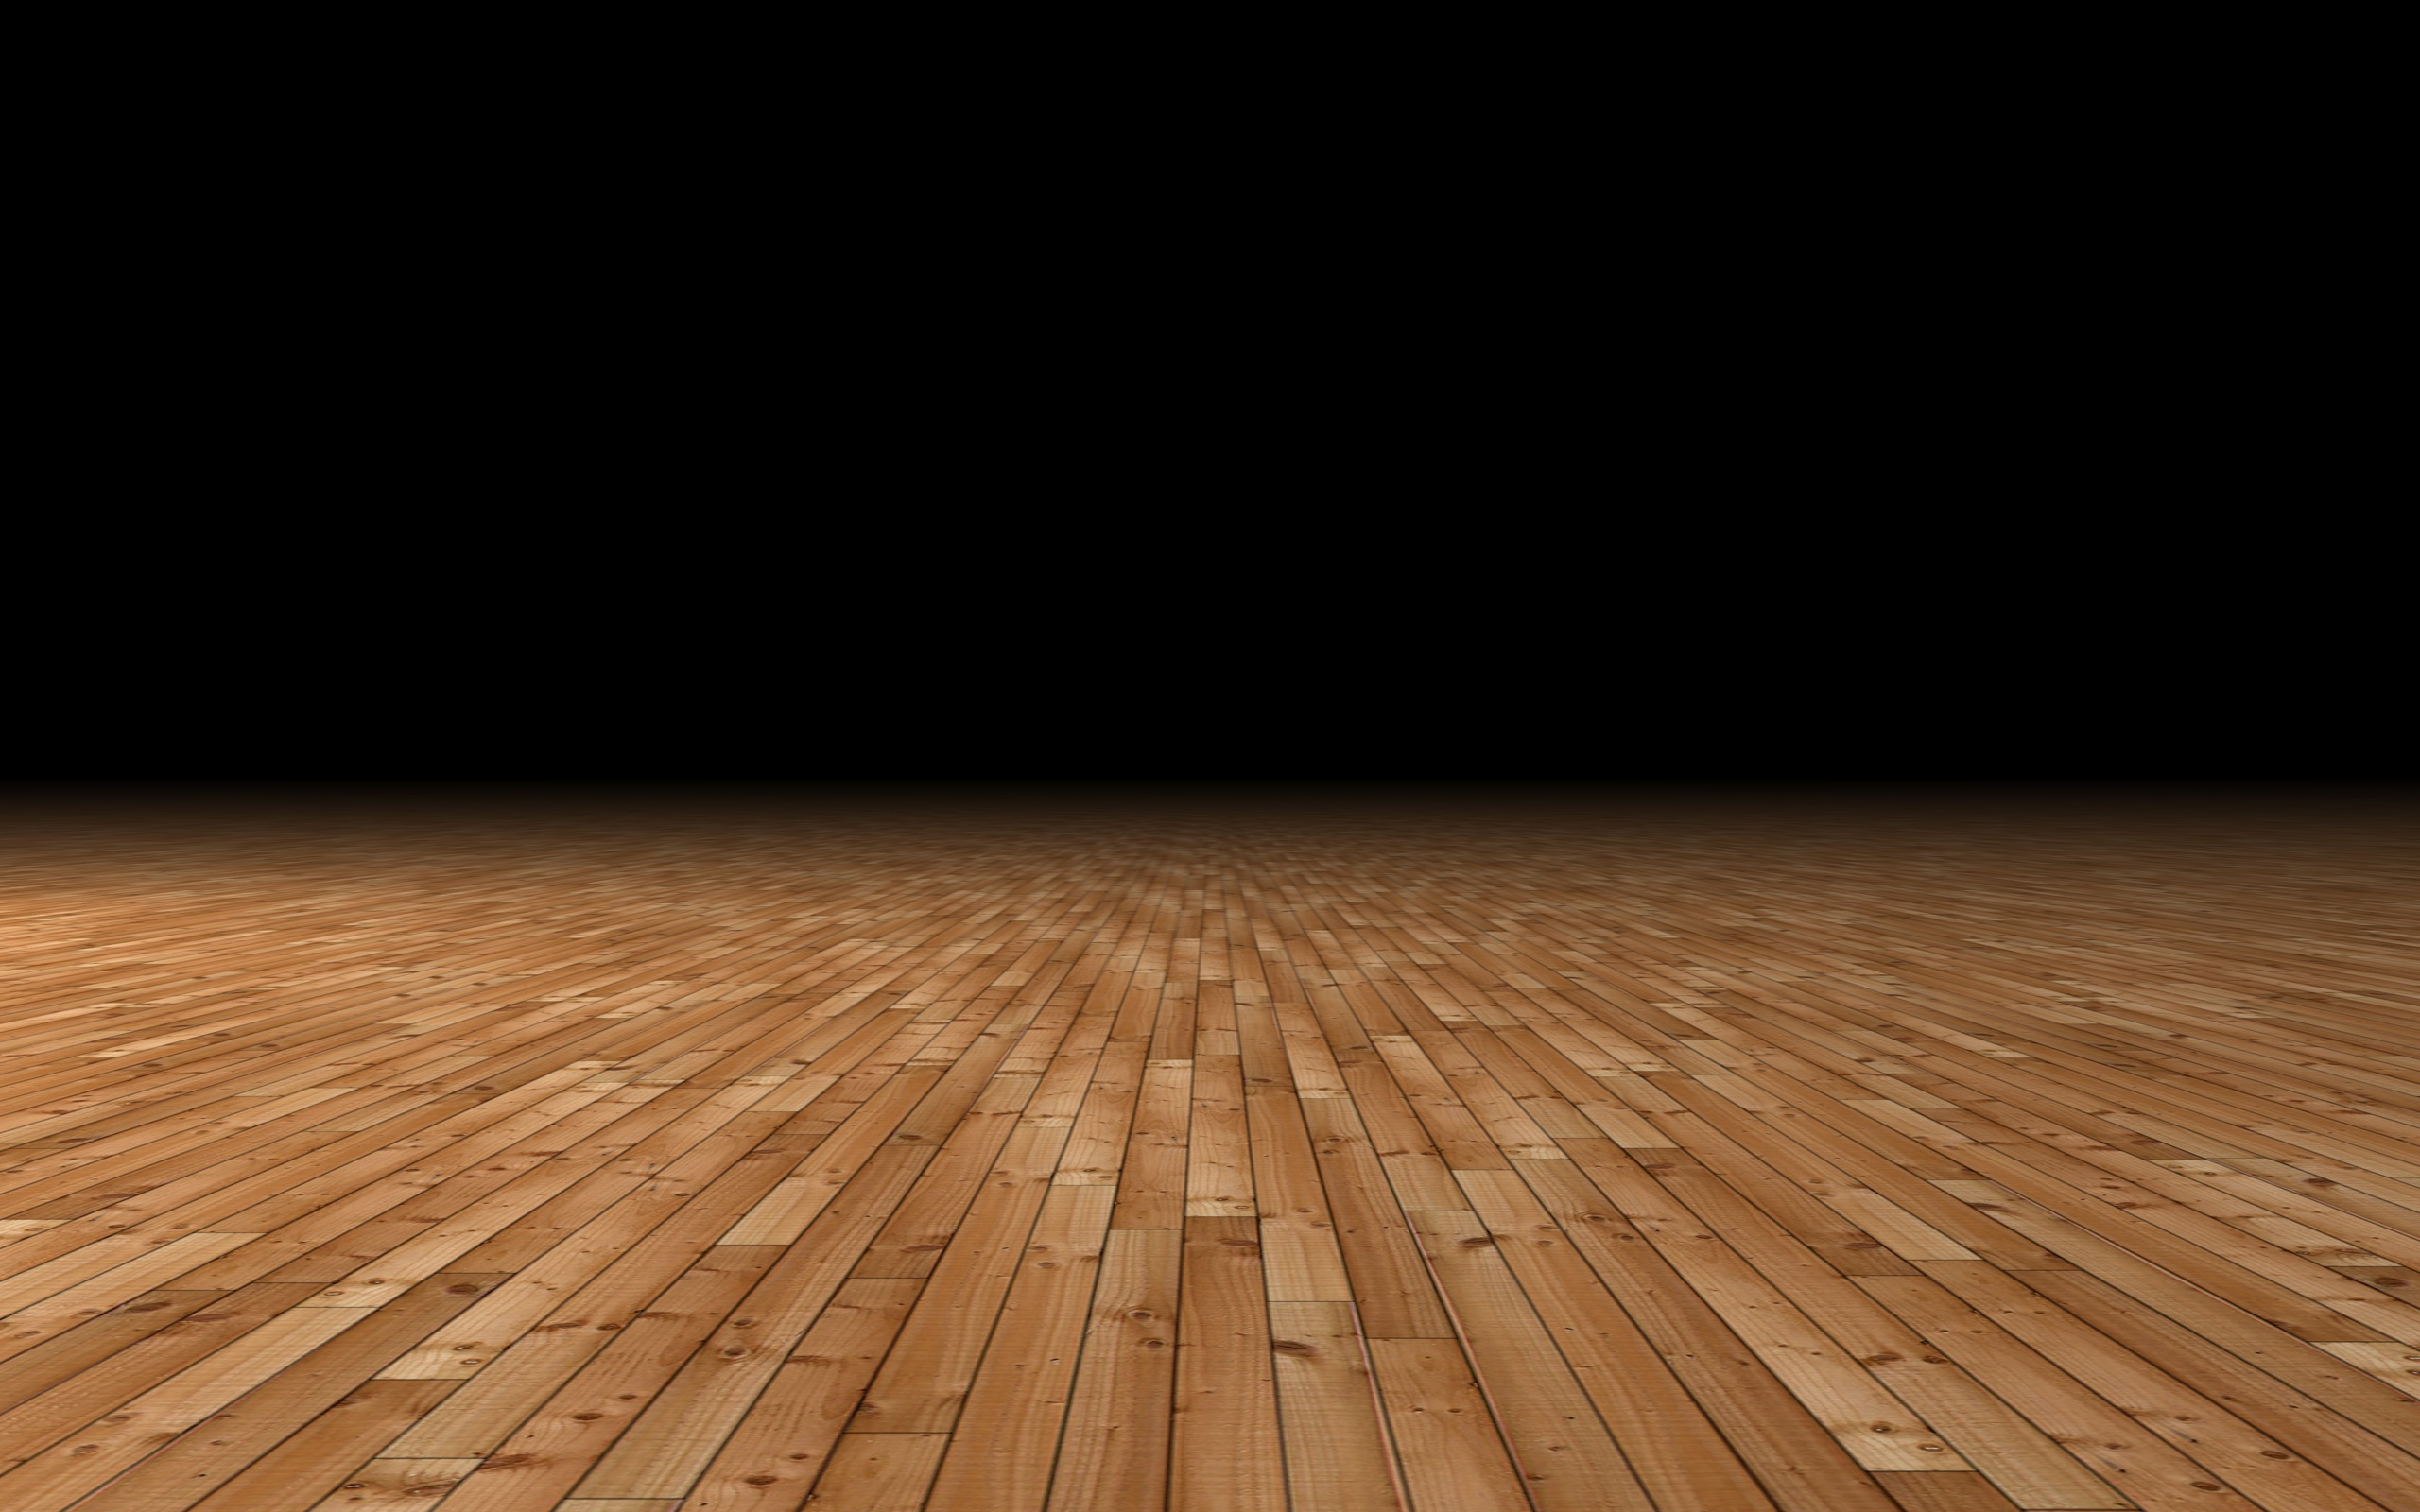 Hd Background Wallpaper 800x600: Basketball Court Wallpaper HD